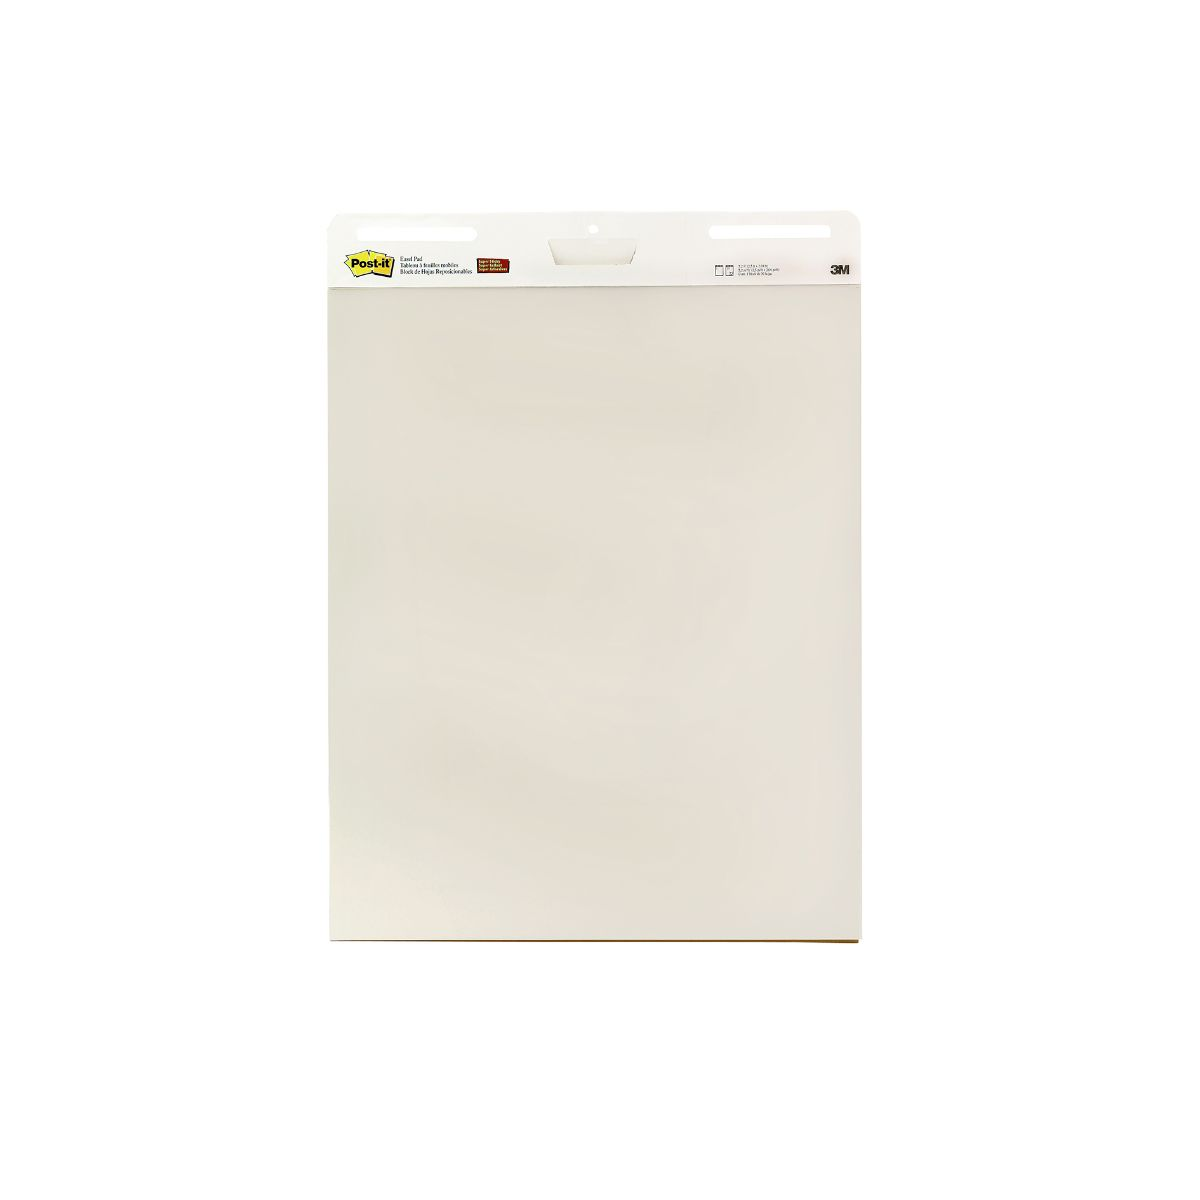 Post-it Meeting Chart Easel Pad Pack of 6, White.